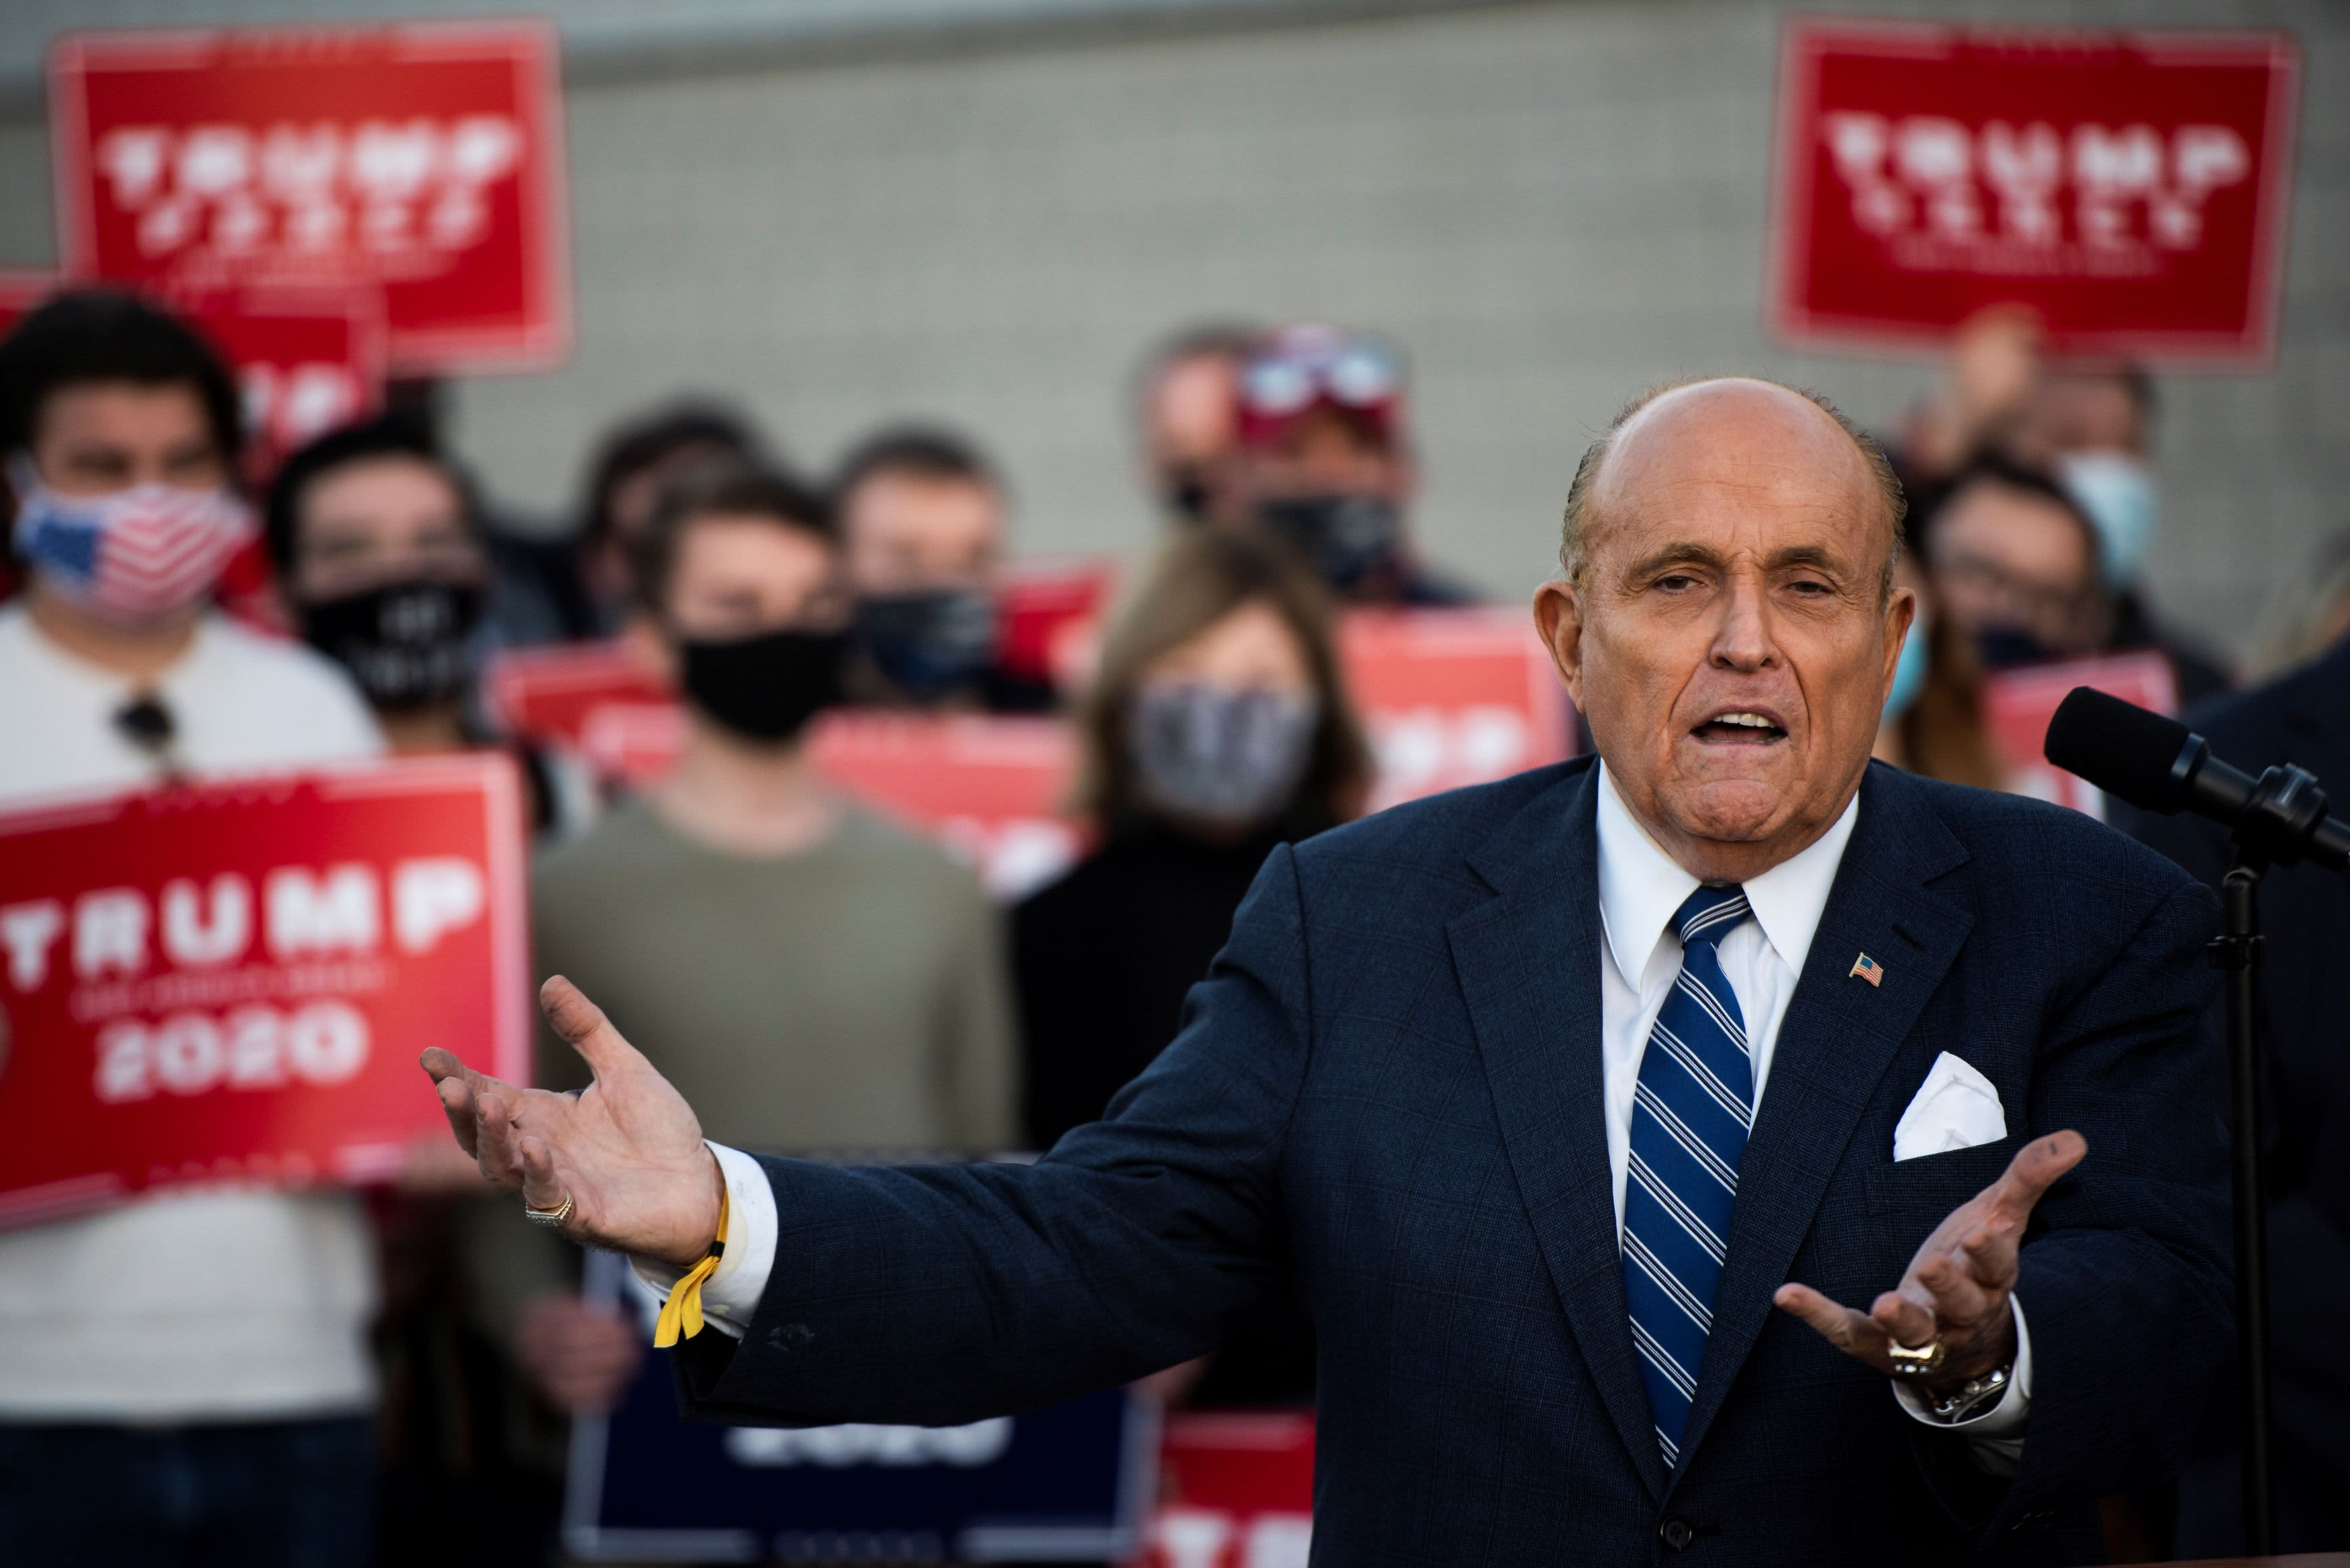 Feds have mentioned making a authorized request for Giuliani's digital communications, say two sources